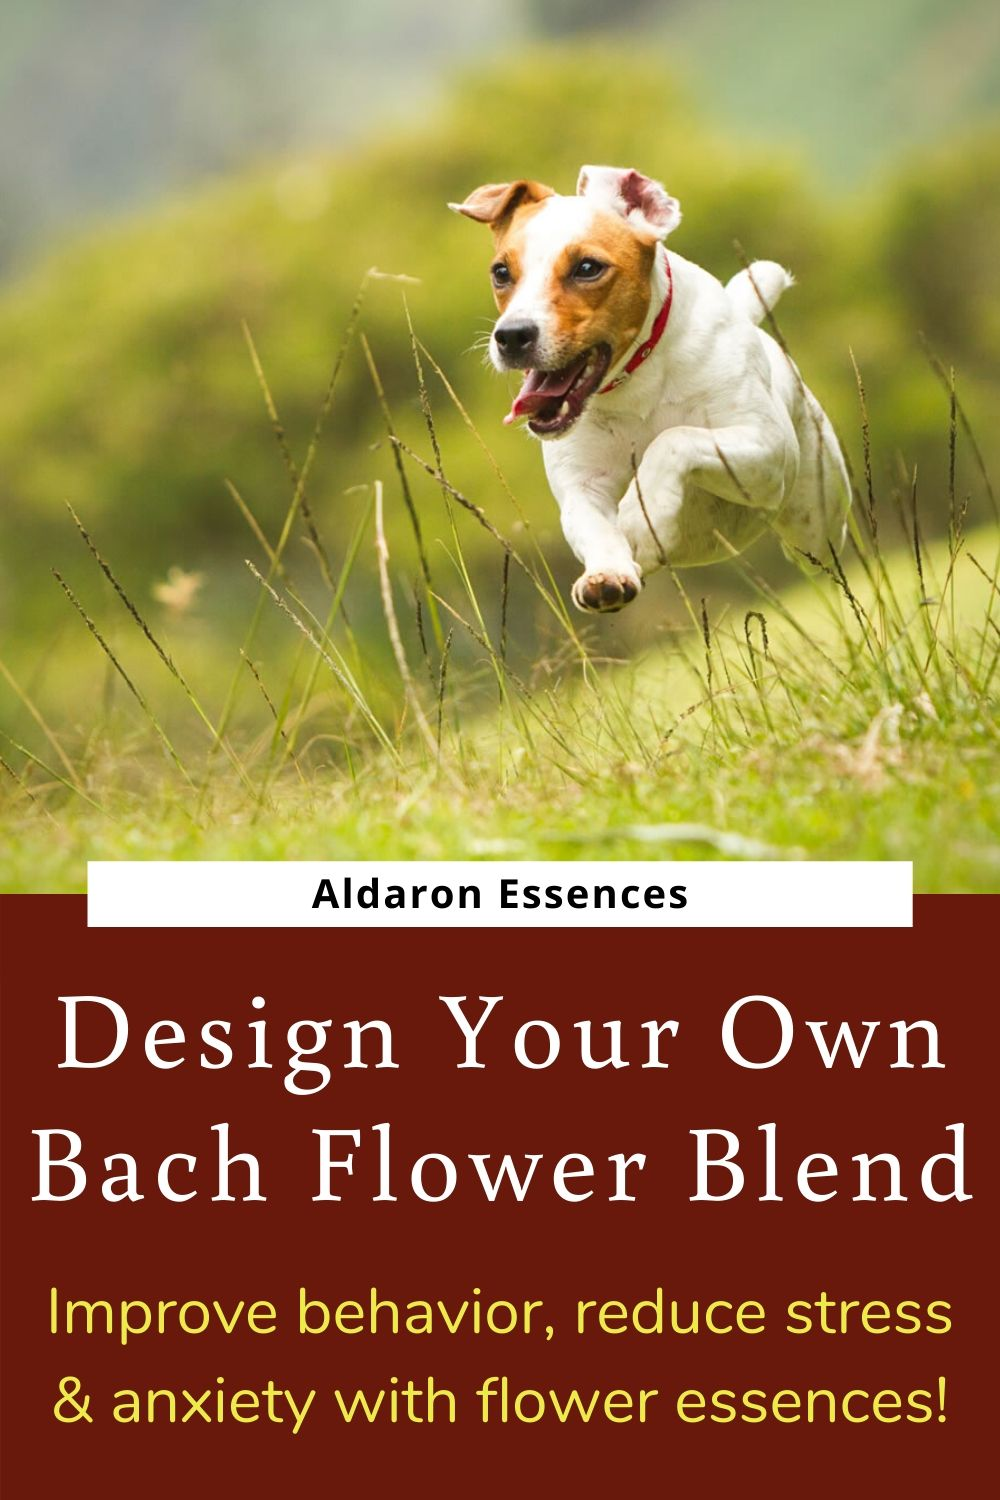 bach-flower-remedies-for-dogs-design-your-own-aldaron-essences-1-.jpg